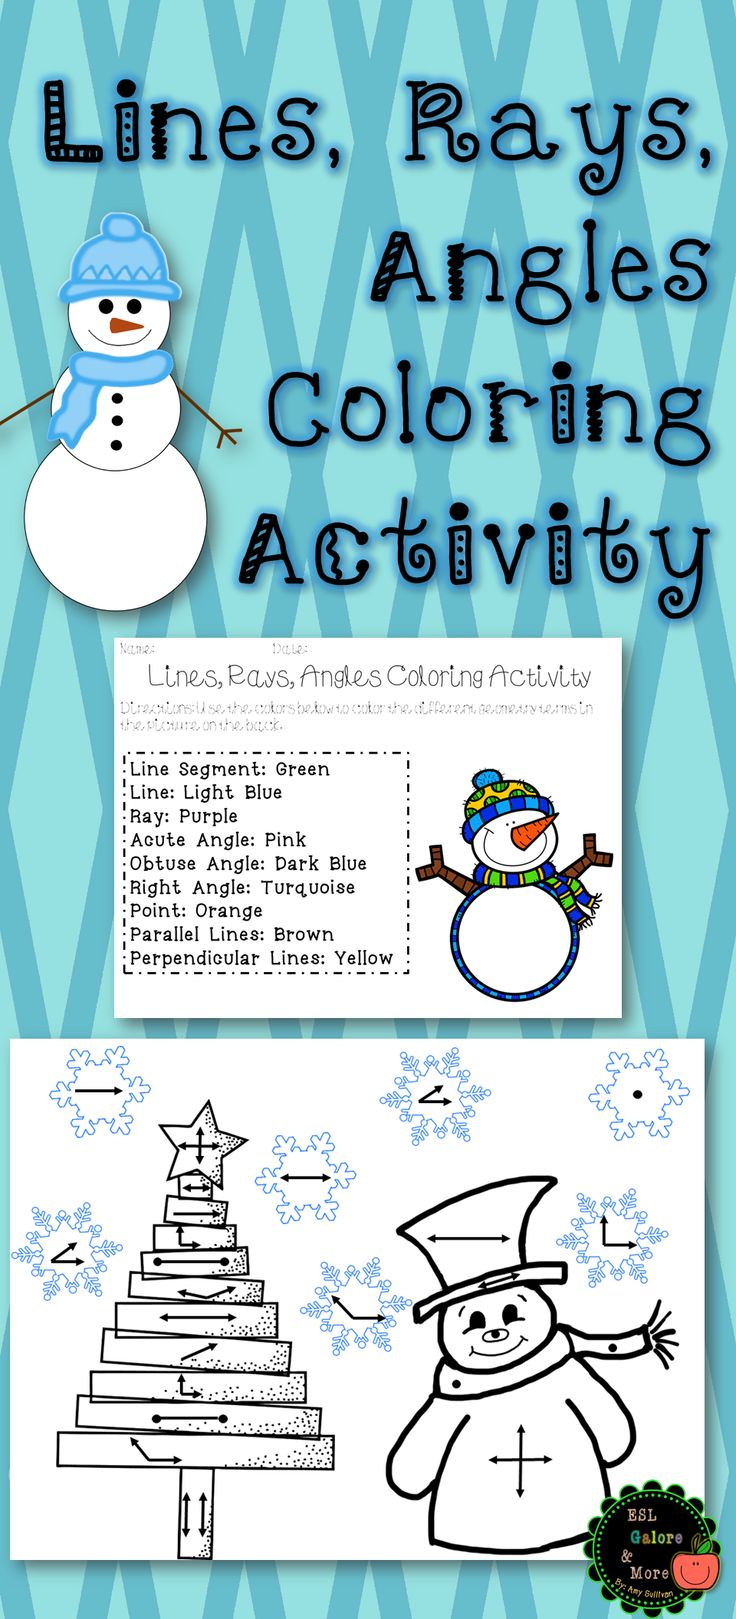 32 best Classroom activities images on Pinterest | School, Teaching ...